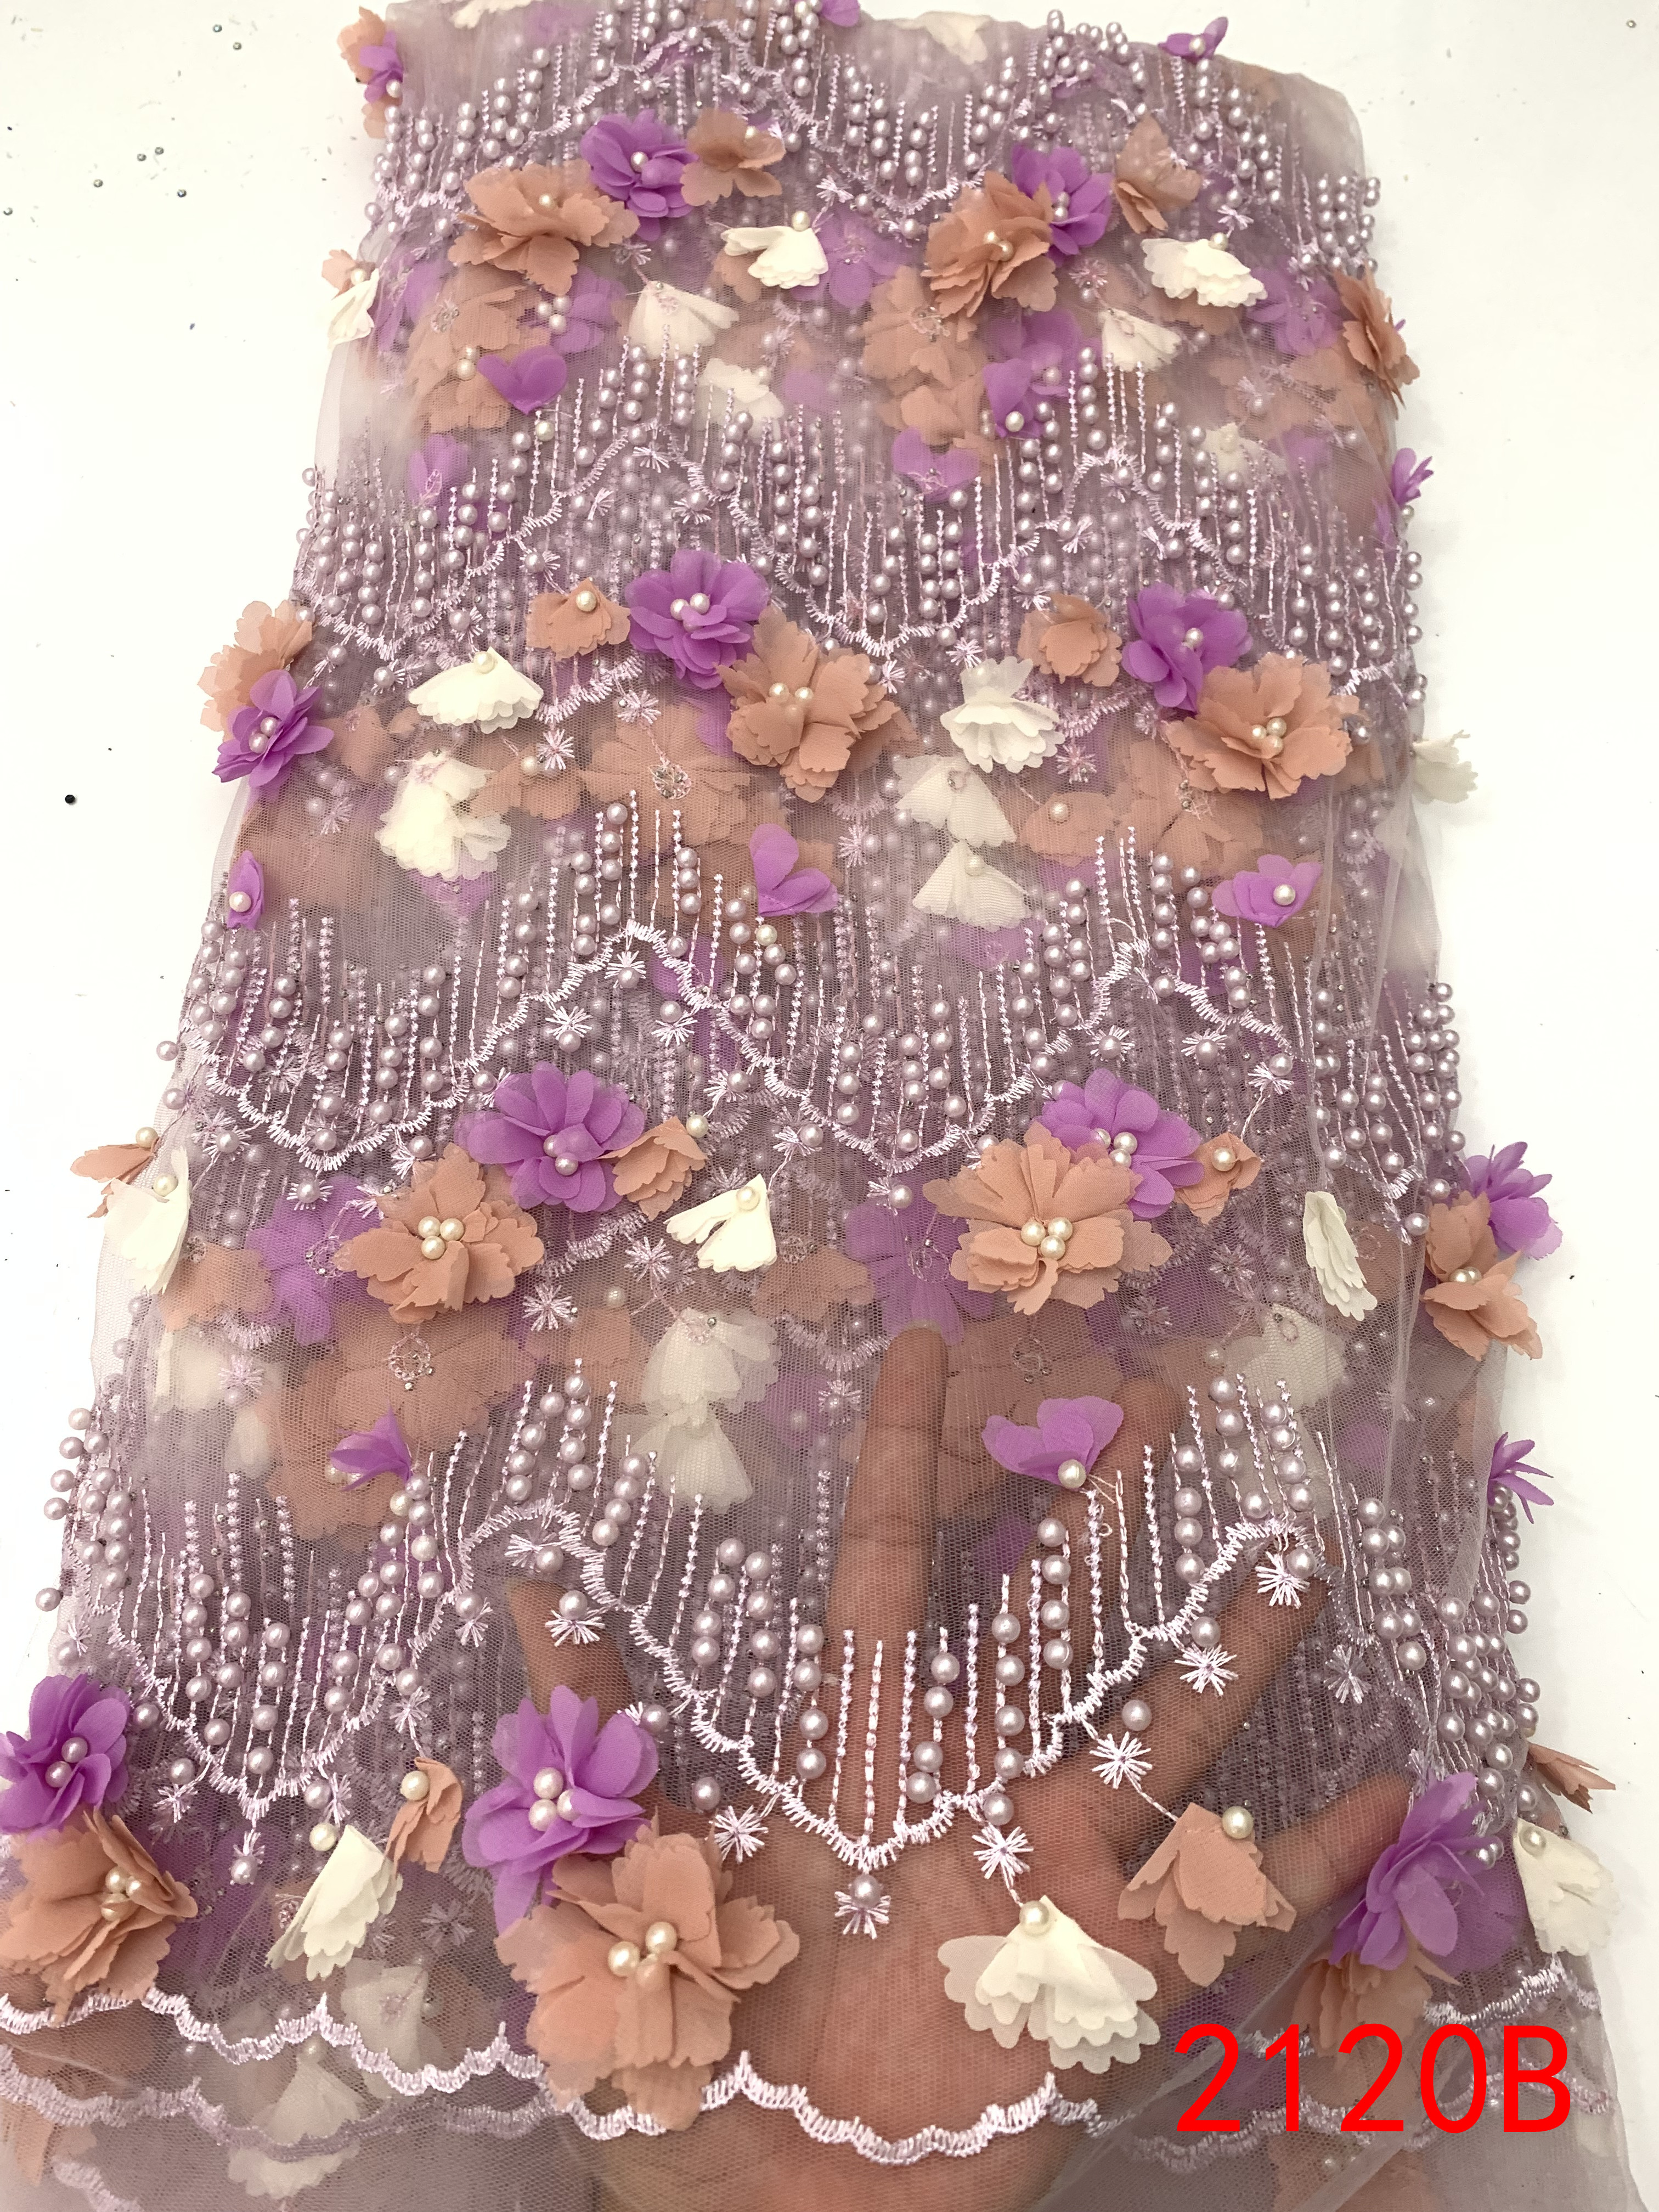 High Quality French 3D Flowers Lace Fabric Latest African Tulle Lace Fabric Applique With Beads Stones KS2120b